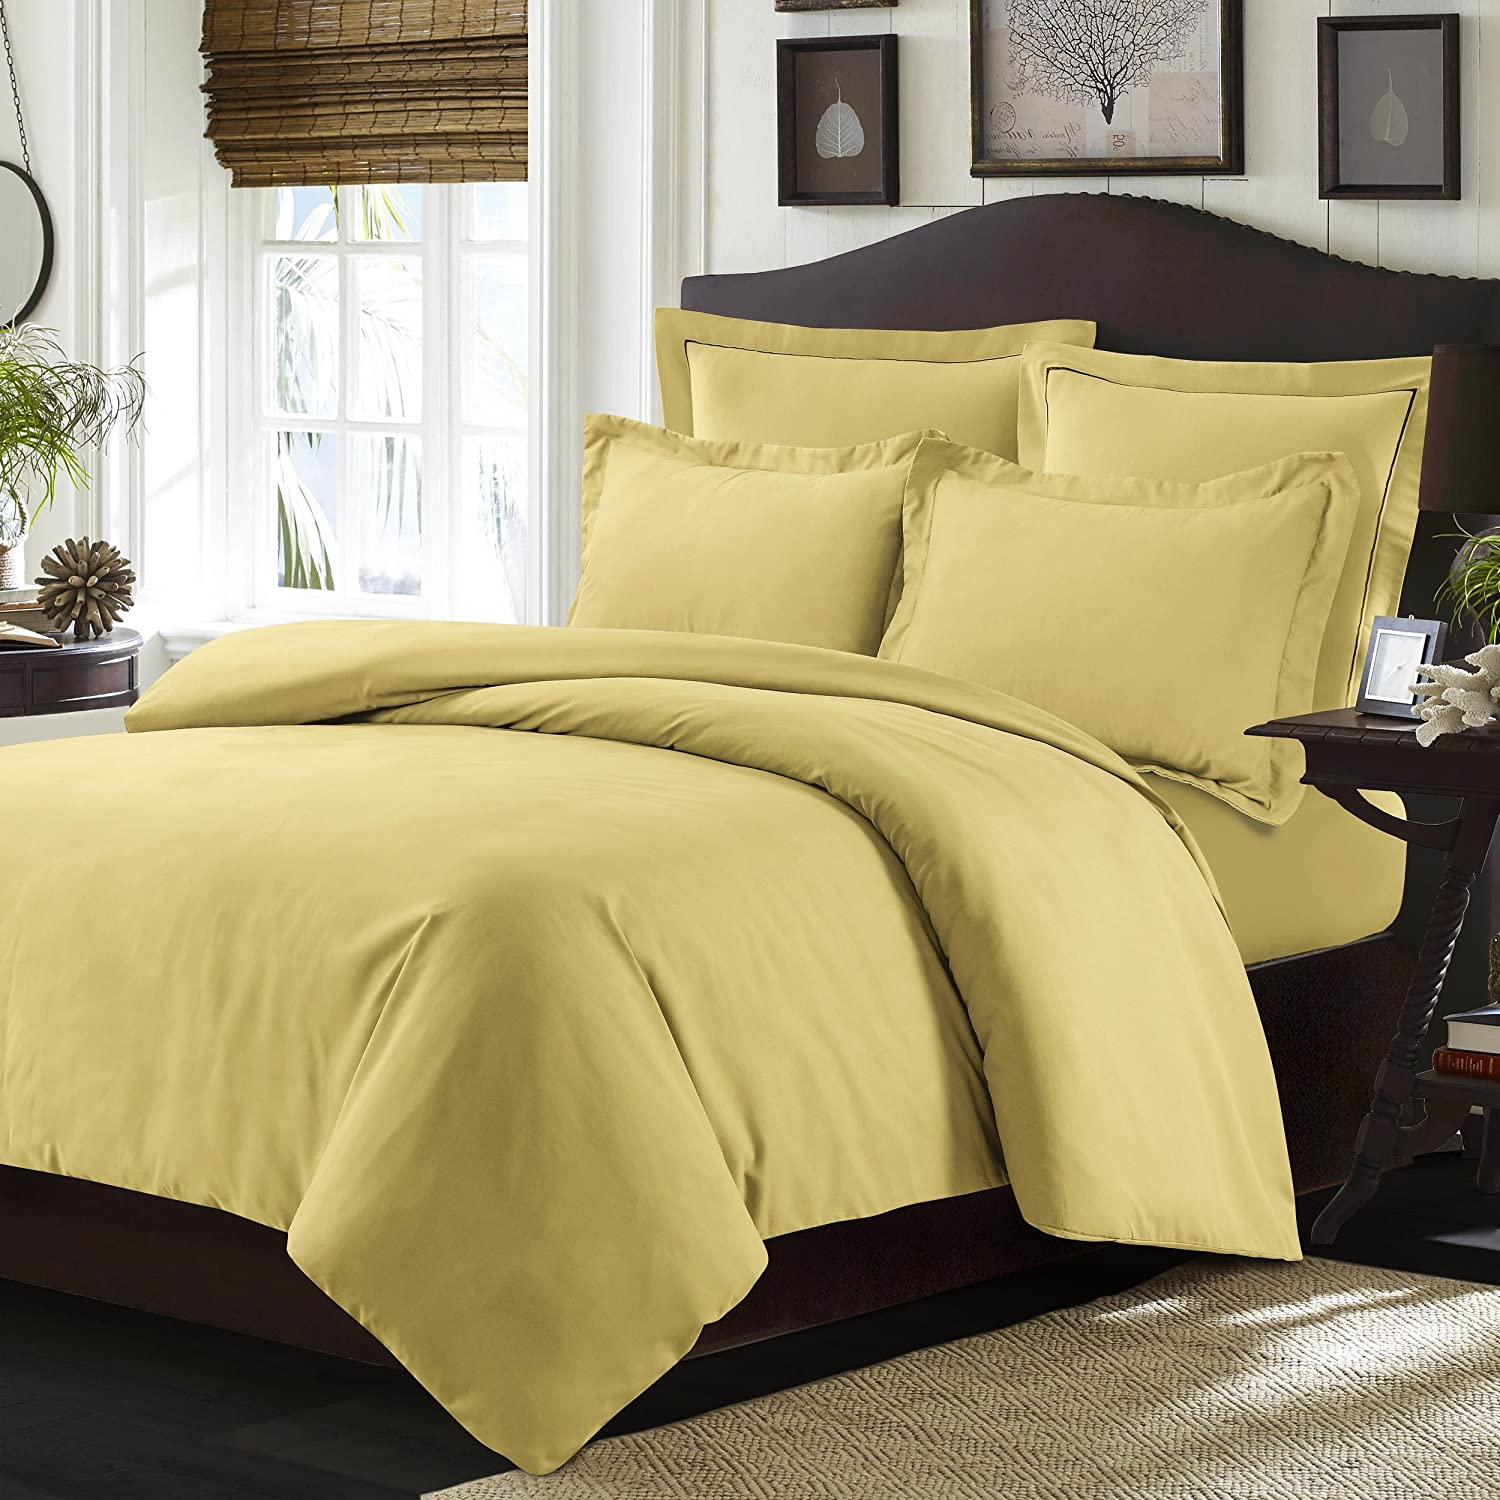 Tribeca Living VALENDUVETQUGO Valencia Solid Duvet Cover Set, Queen Gold,Queen